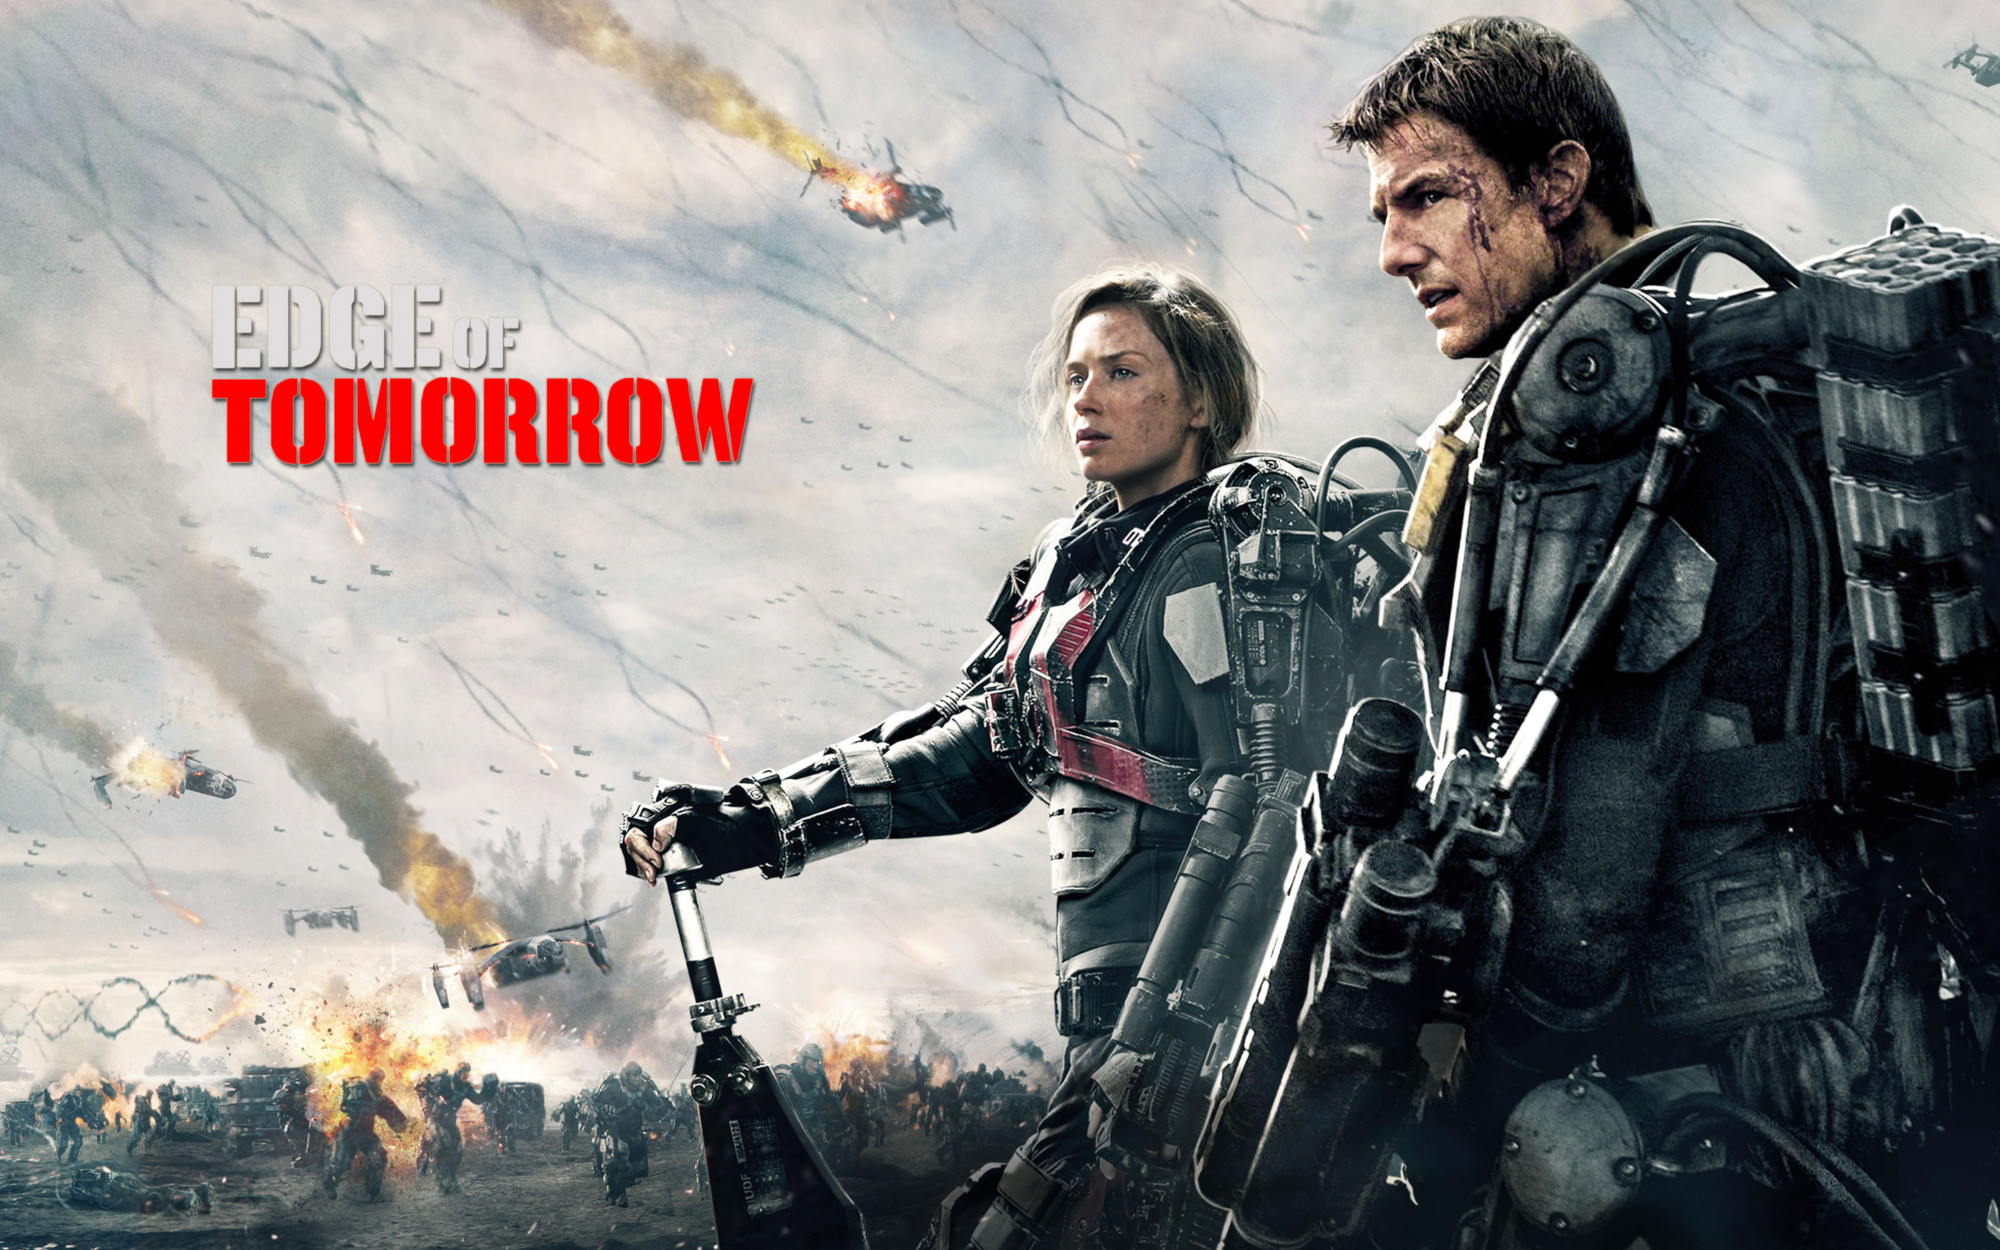 tom-cruise-is-stuck-in-a-time-loop-fighting-aliens-in-first-edge-of-tomorrow-trailer